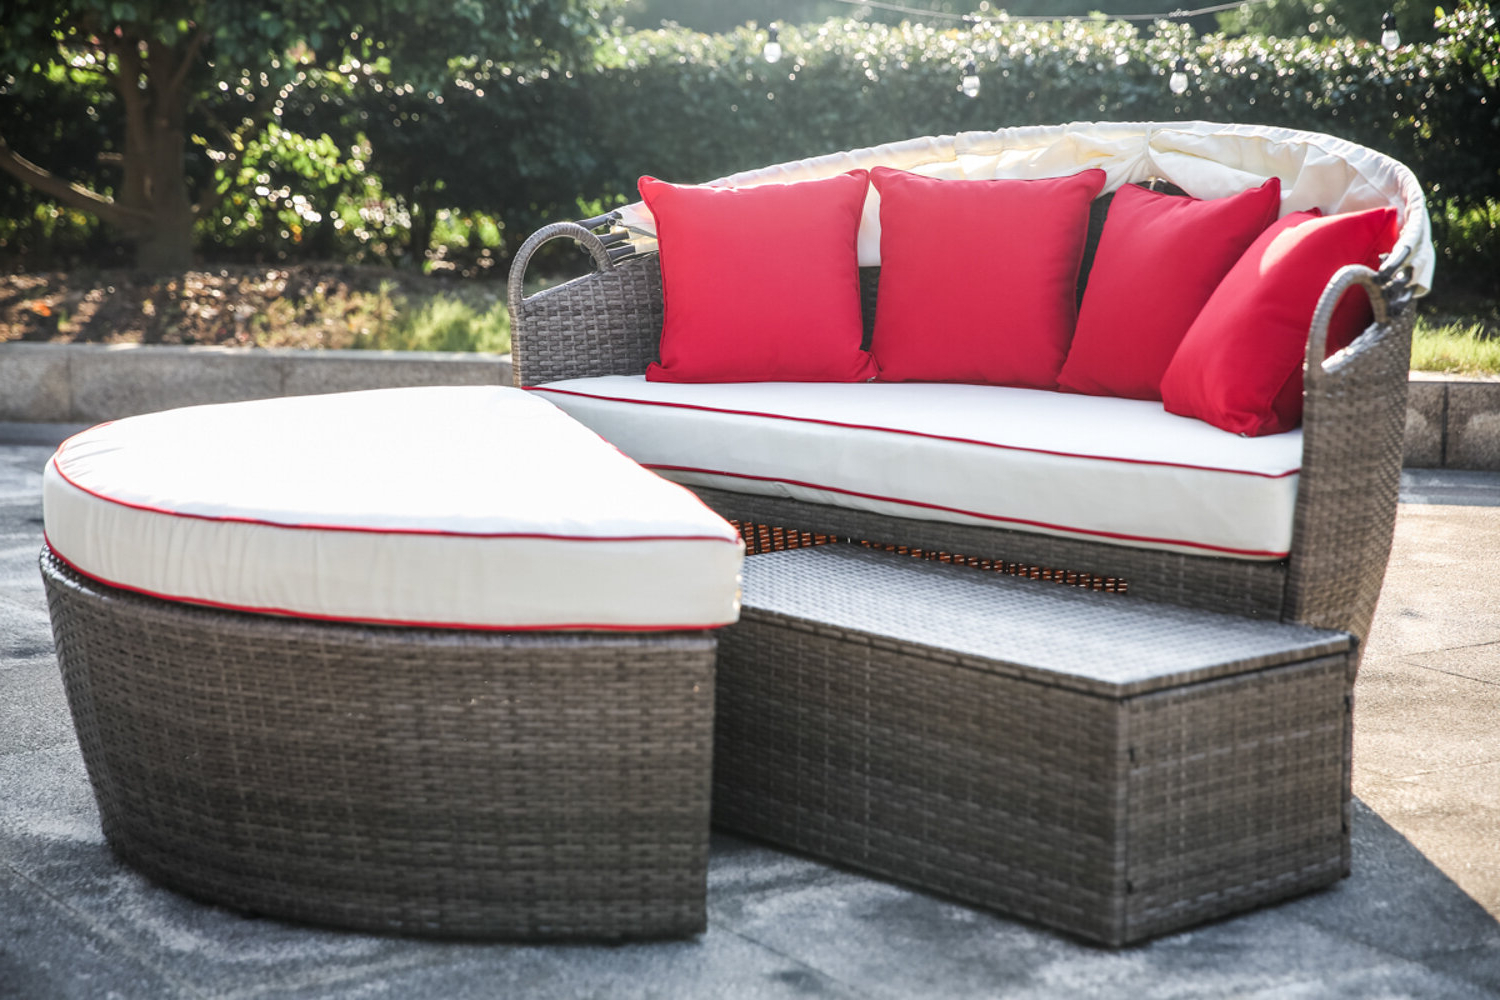 Leiston Round Patio Daybeds With Cushions Intended For Well Liked Fansler Patio Daybed With Cushions (View 7 of 20)